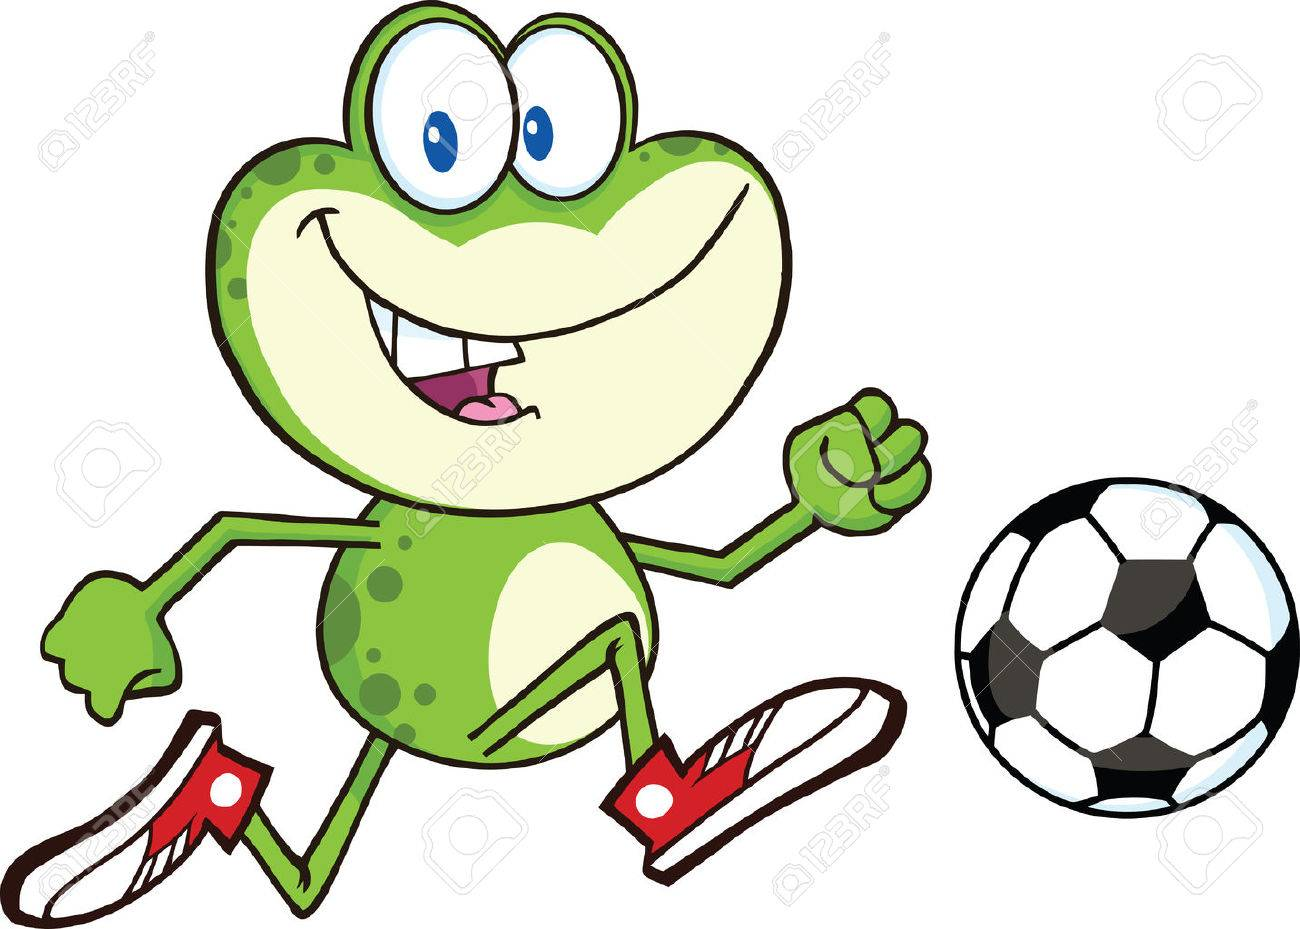 Uncategorized Frog Cartoon cute green frog cartoon character playing with soccer ball illustration isolated on white stock vector